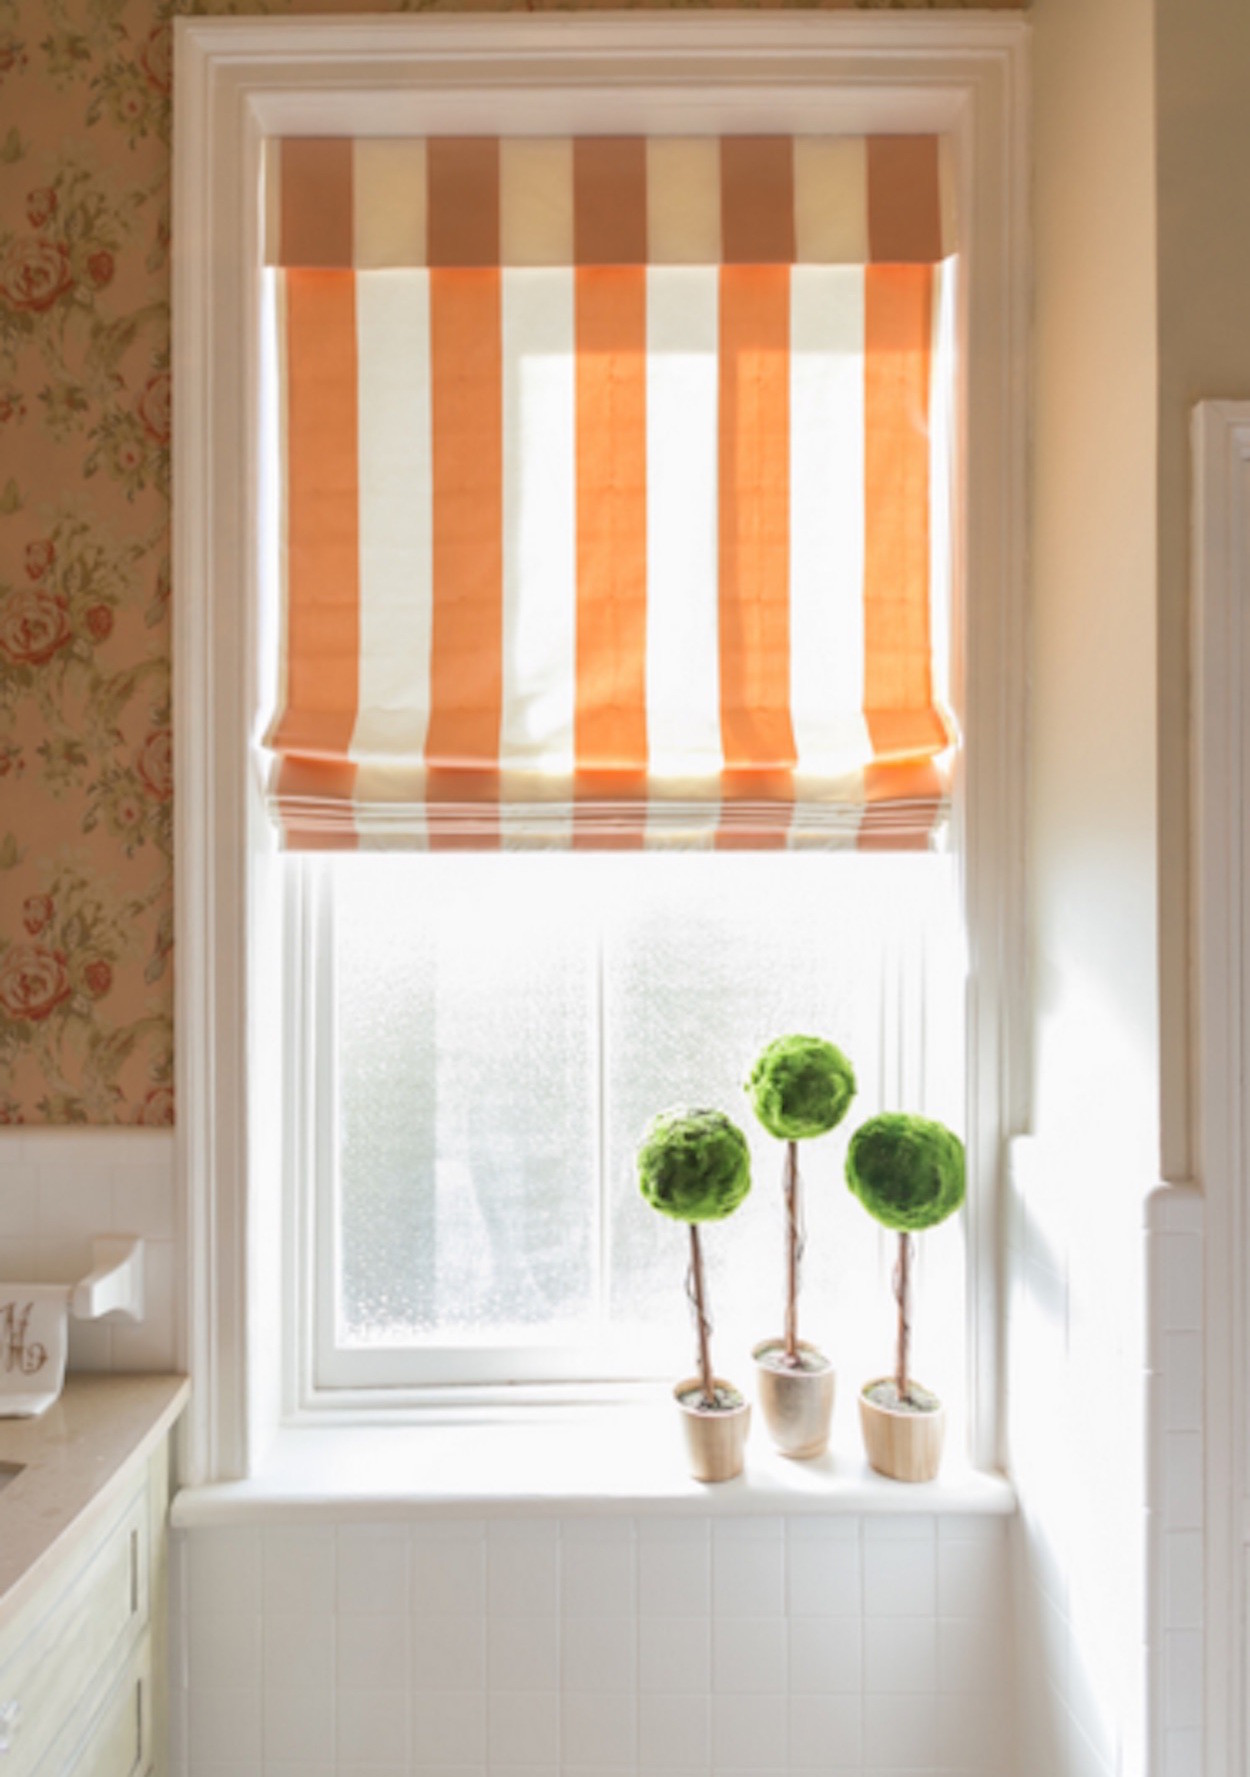 Superbe 7 Different Bathroom Window Treatments You Might Not Have Thought Of |  Martha Stewart